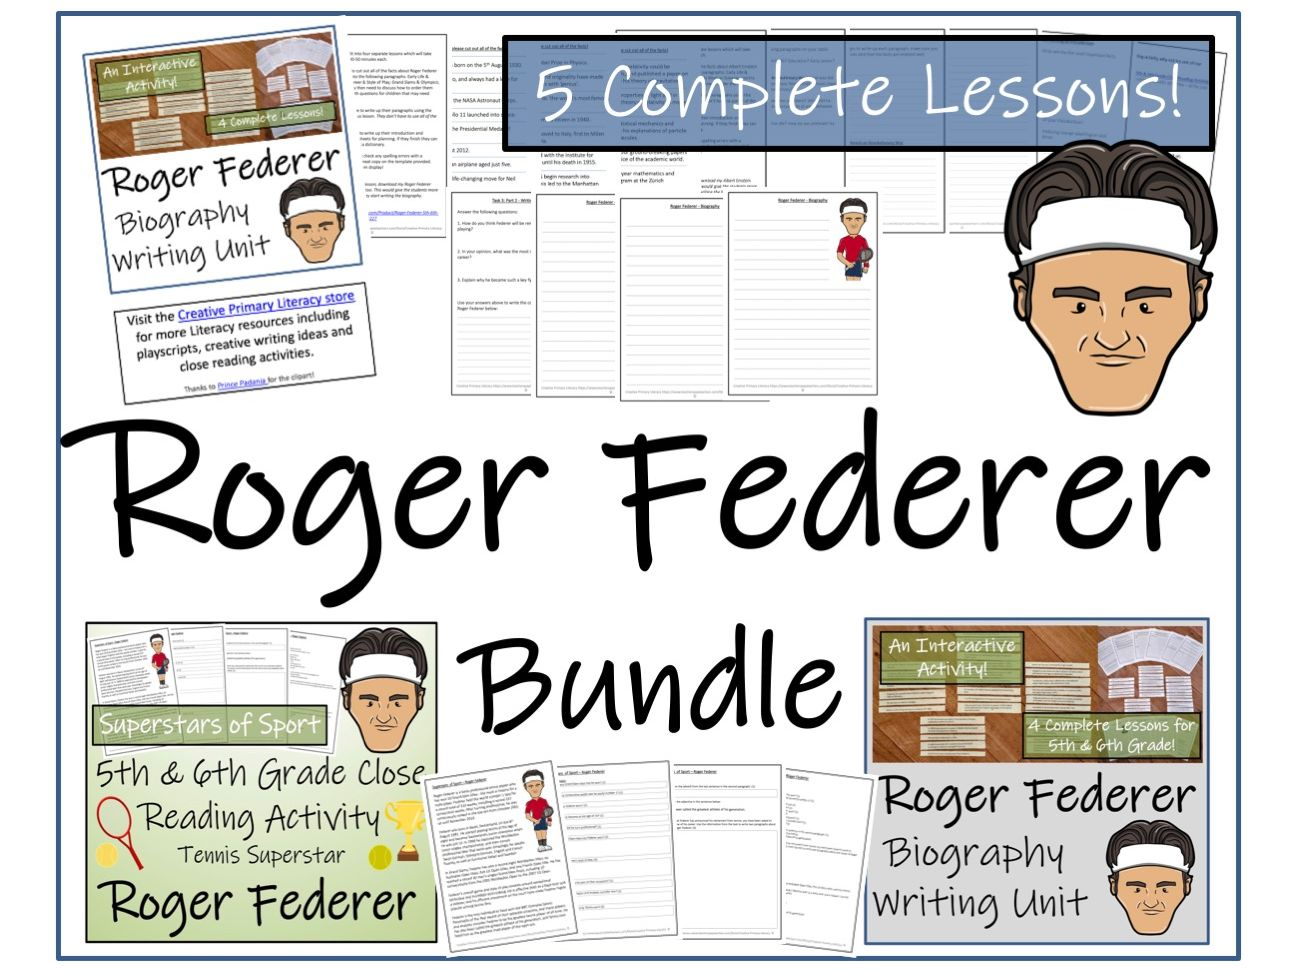 UKS2 Literacy - Bundle of Roger Federer Activities